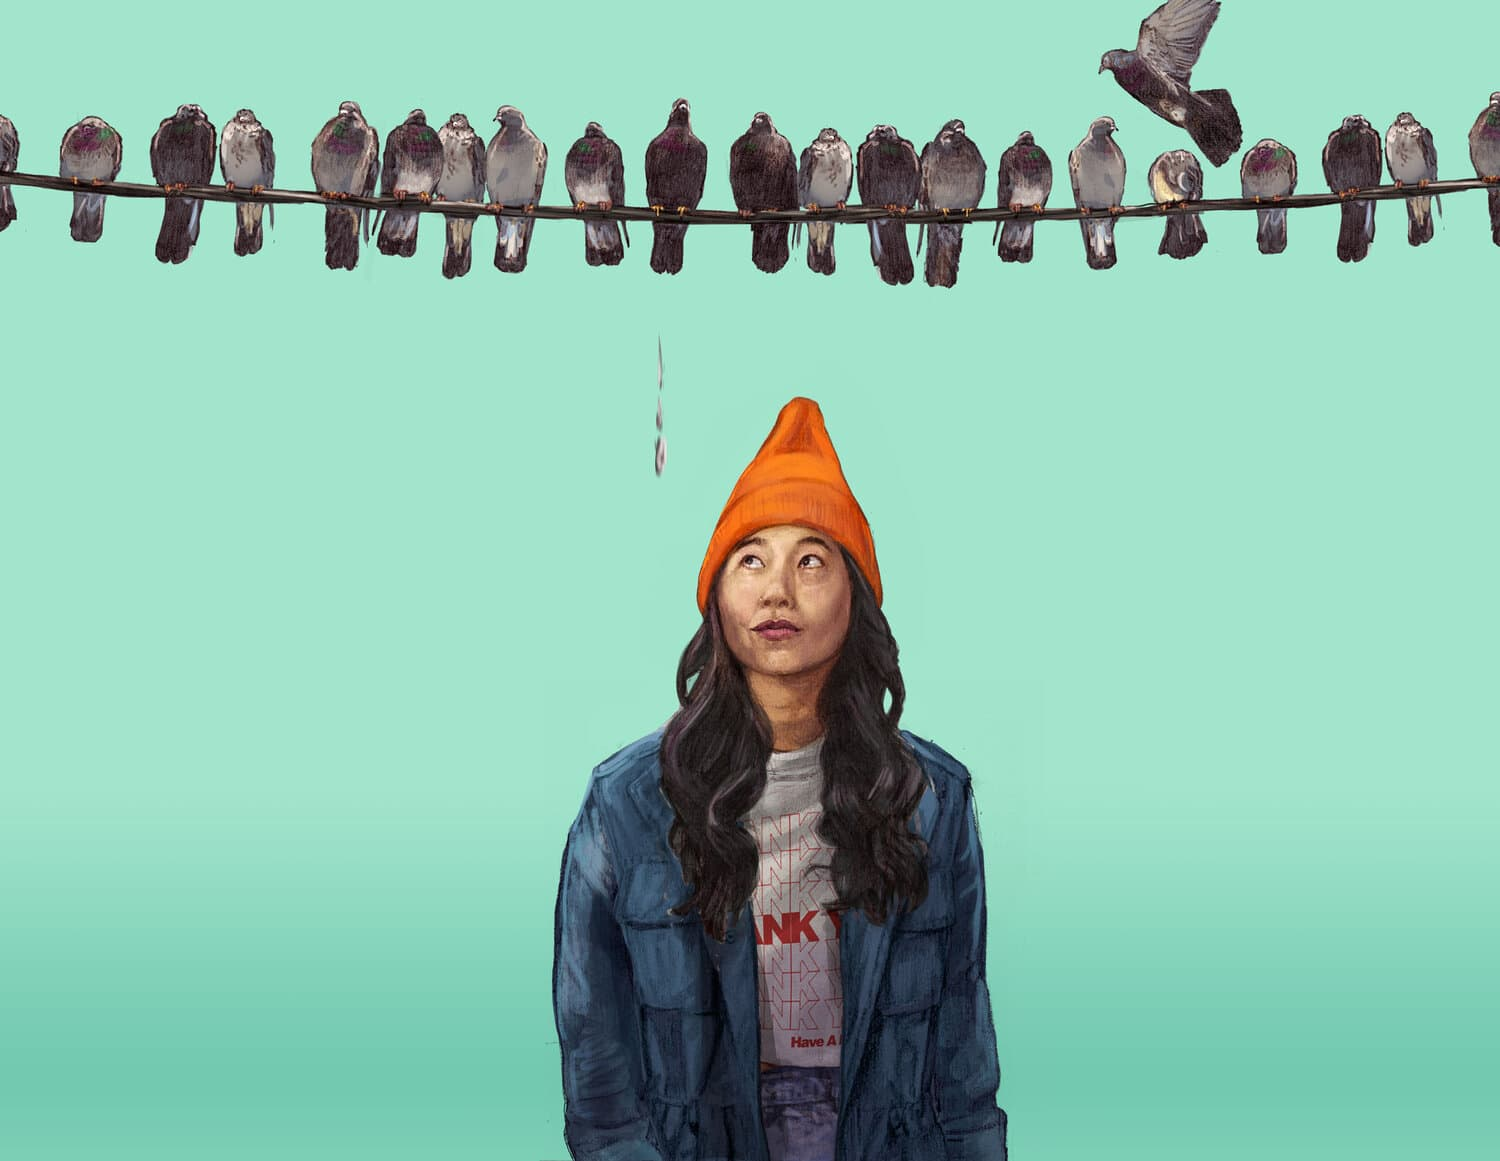 AWKWAFINA IS NORA FROM QUEENS S1